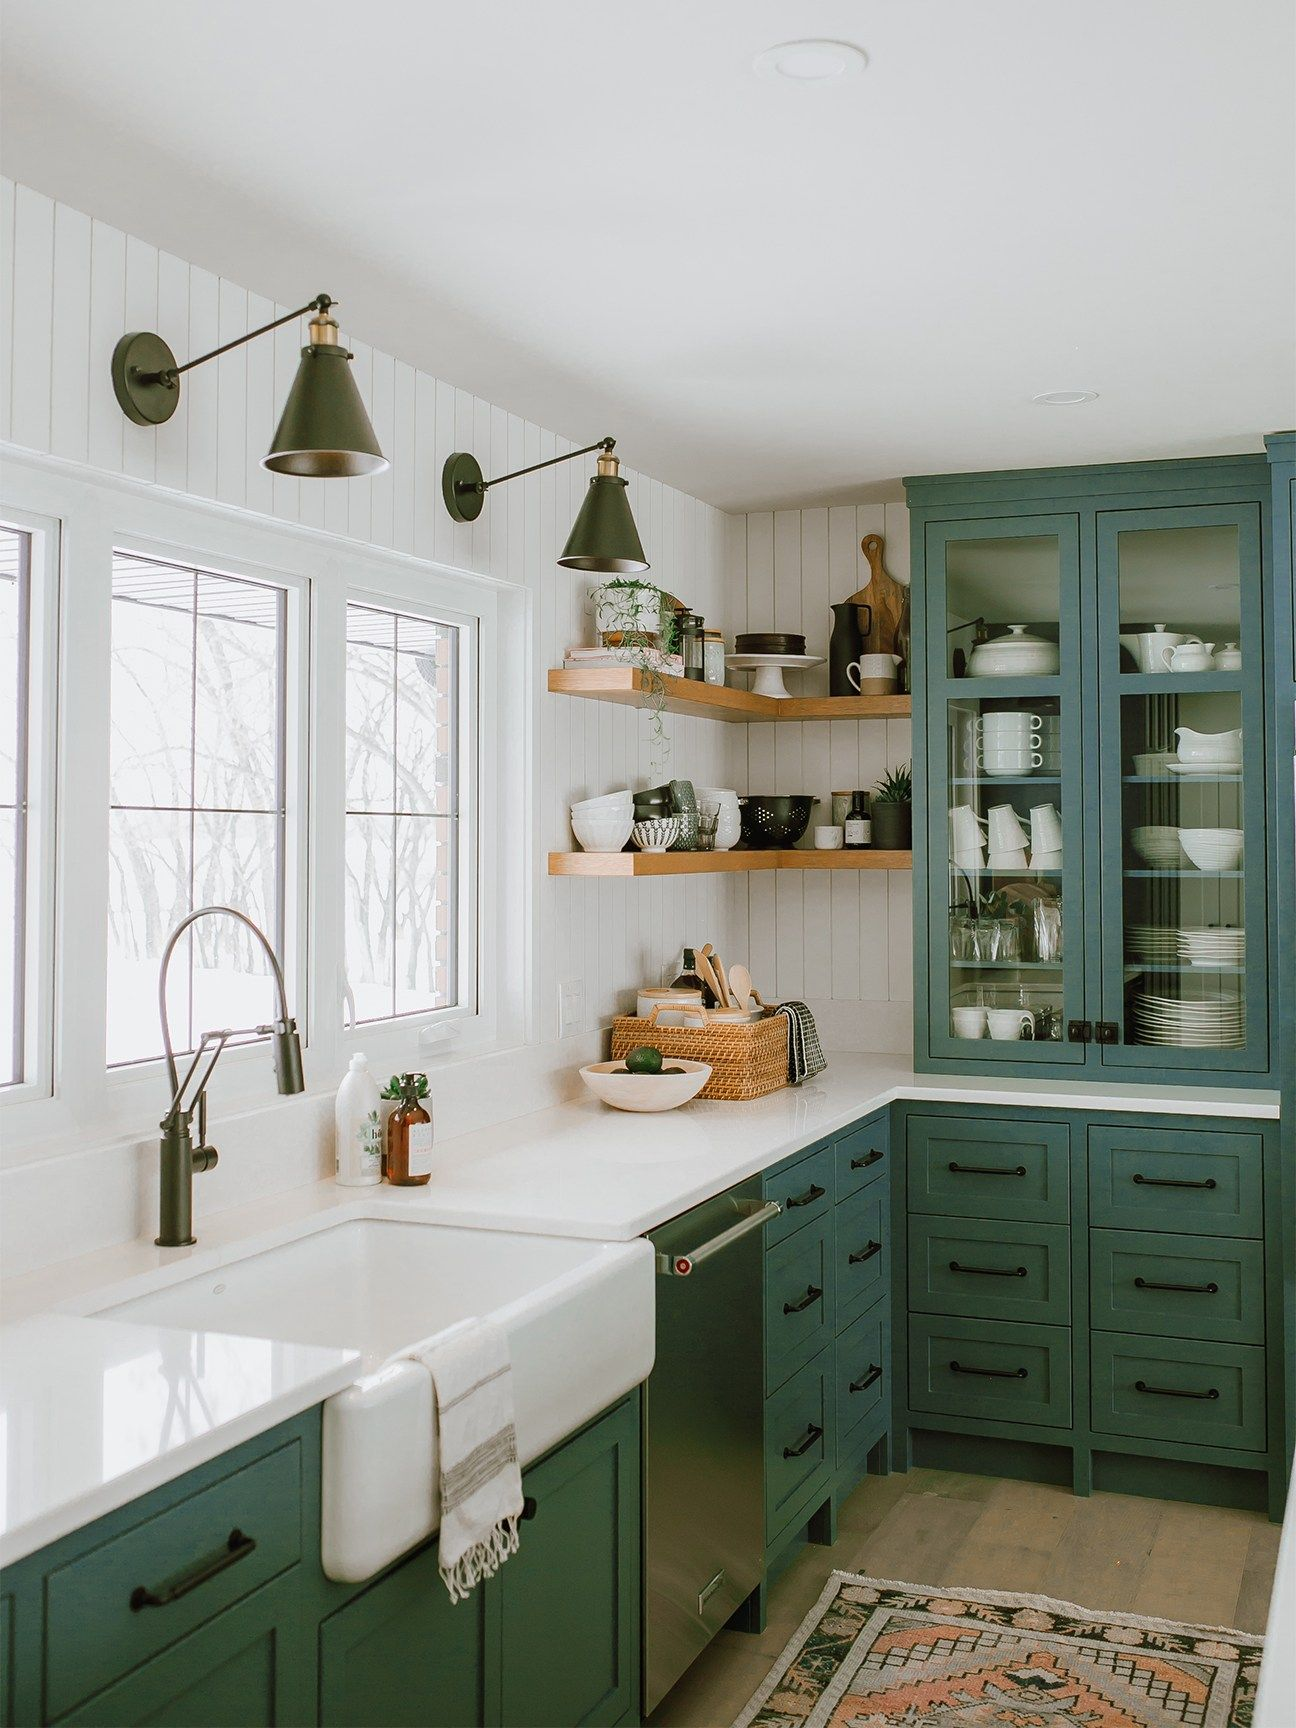 9 Green Kitchen Ideas for Your Most Colorful